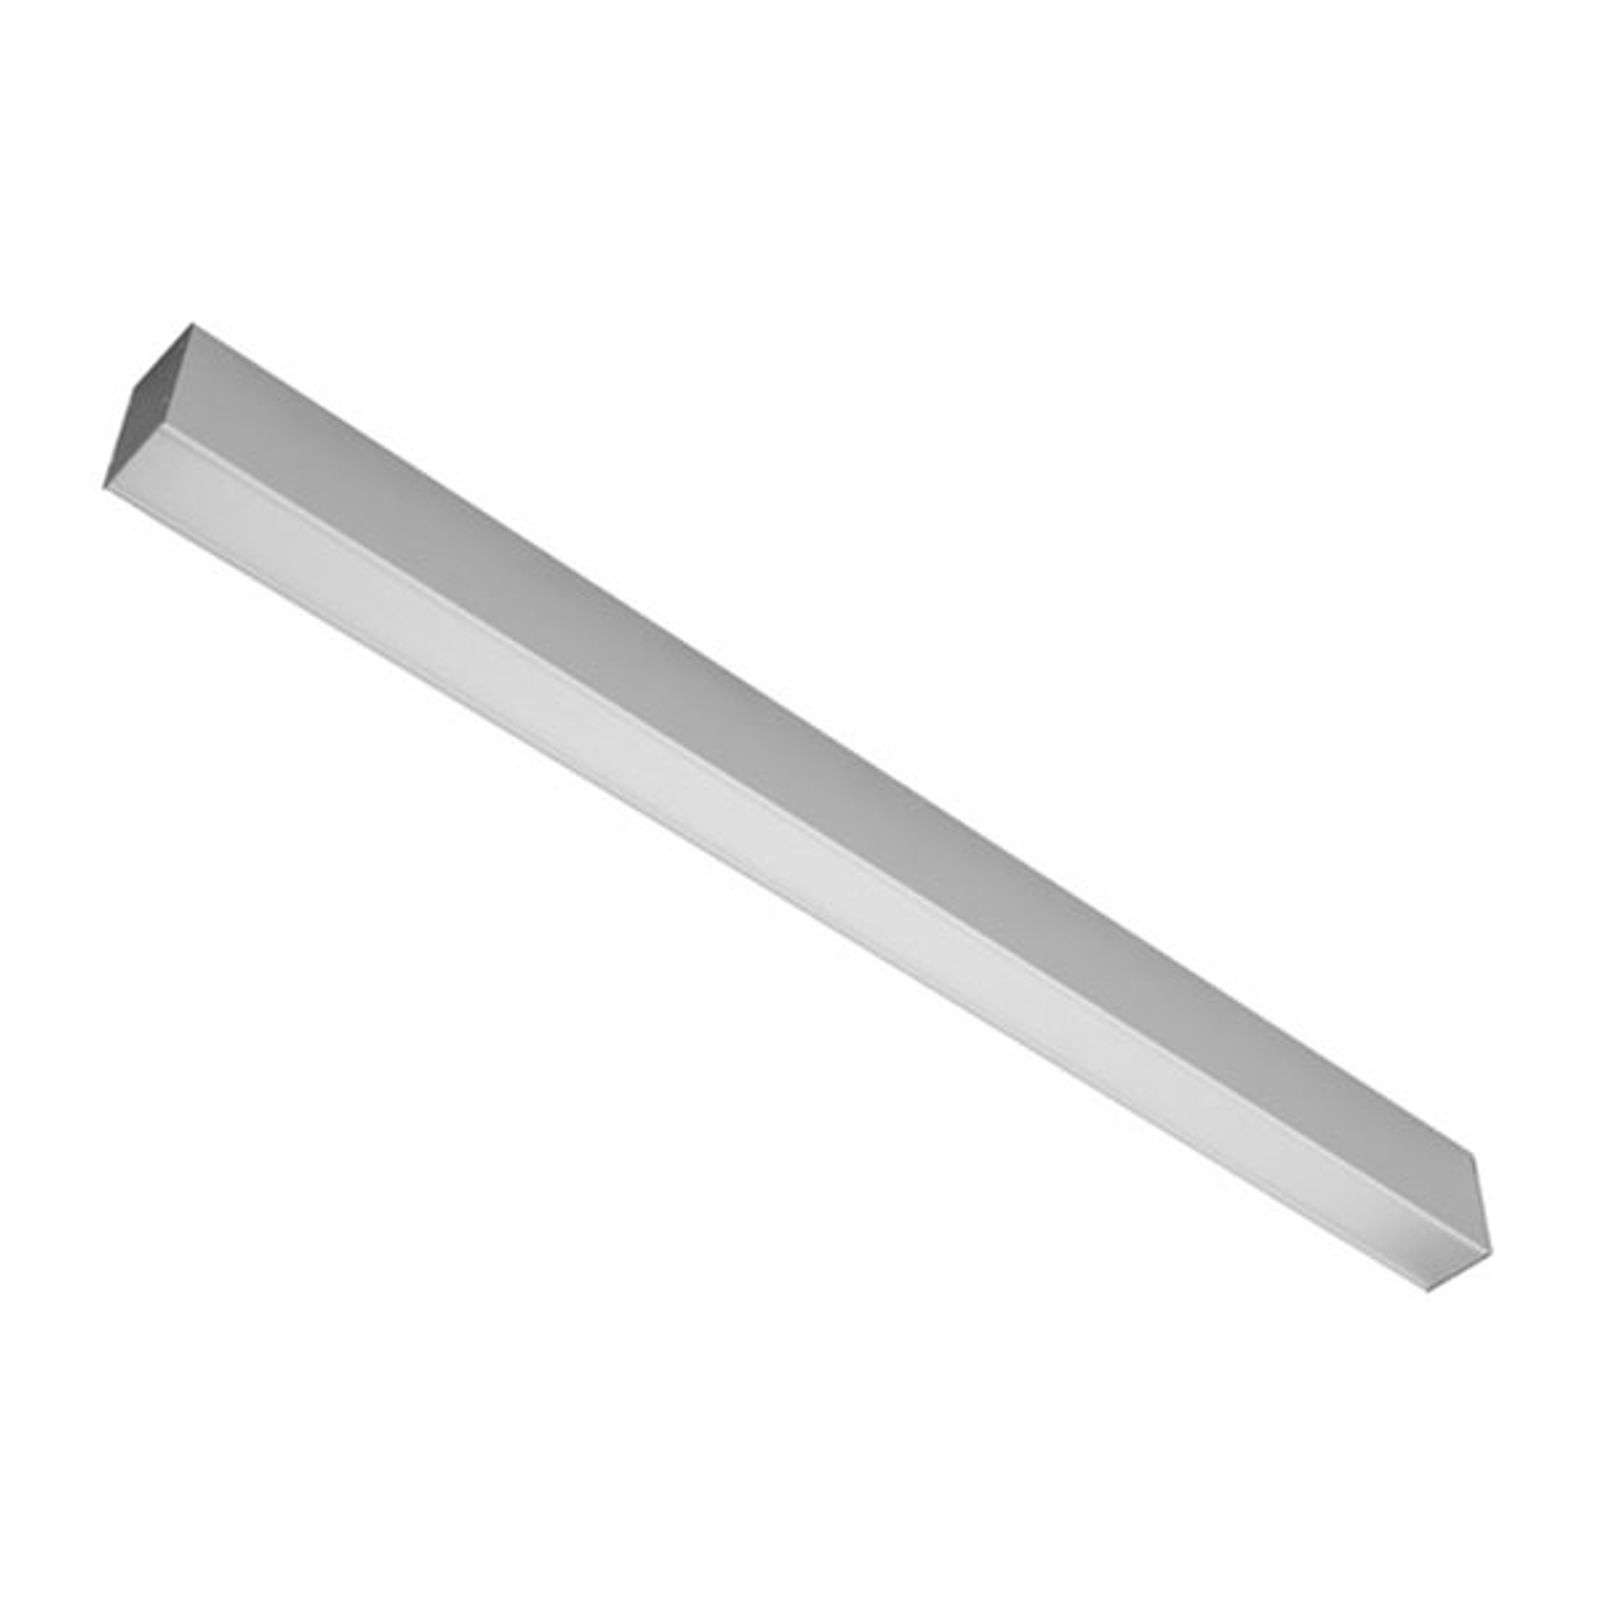 Applique LED aluminium 4 000 K 54 W